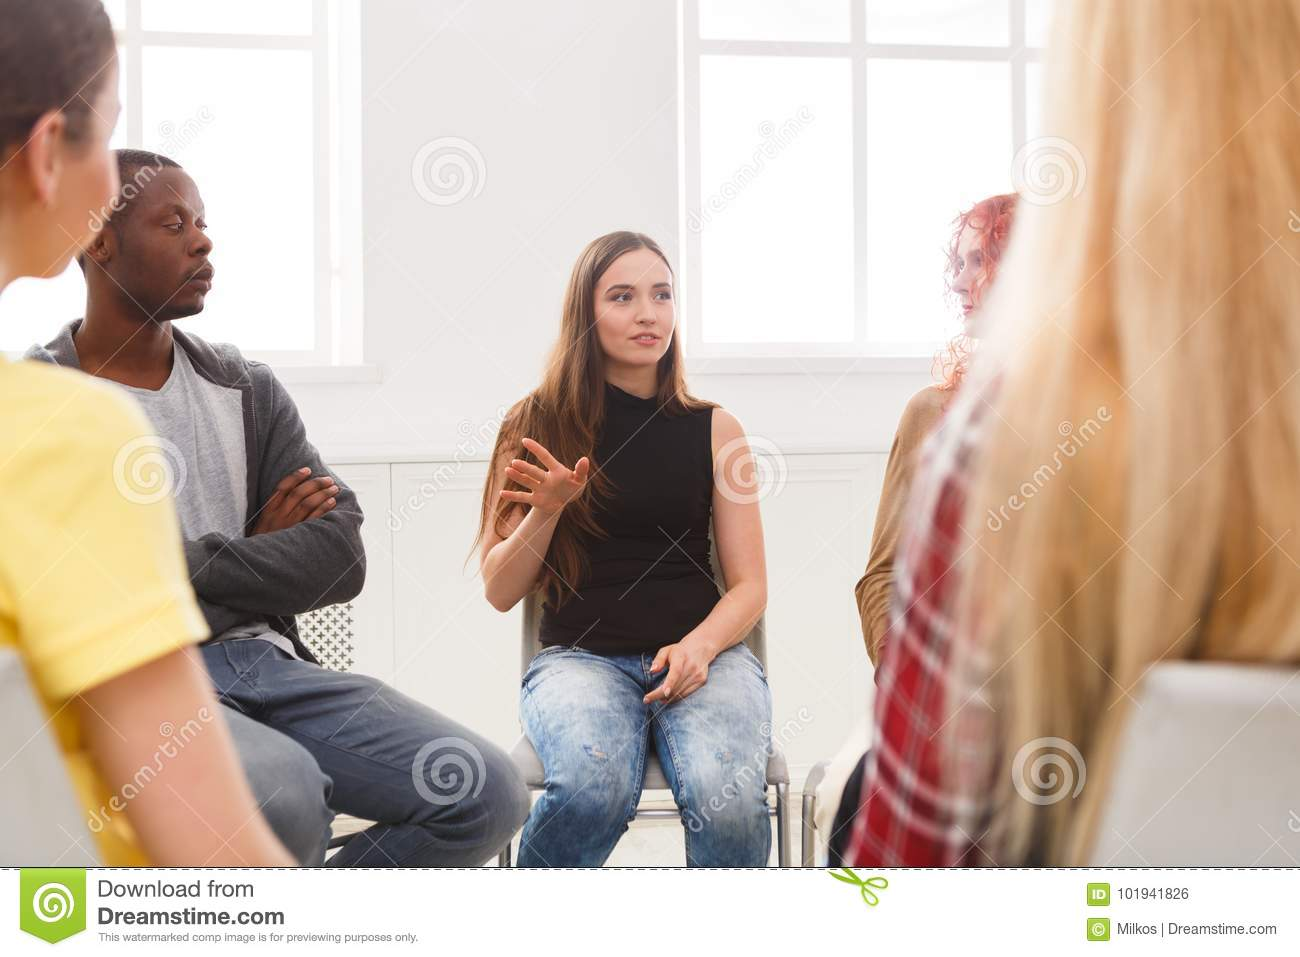 Meeting of support group, therapy session